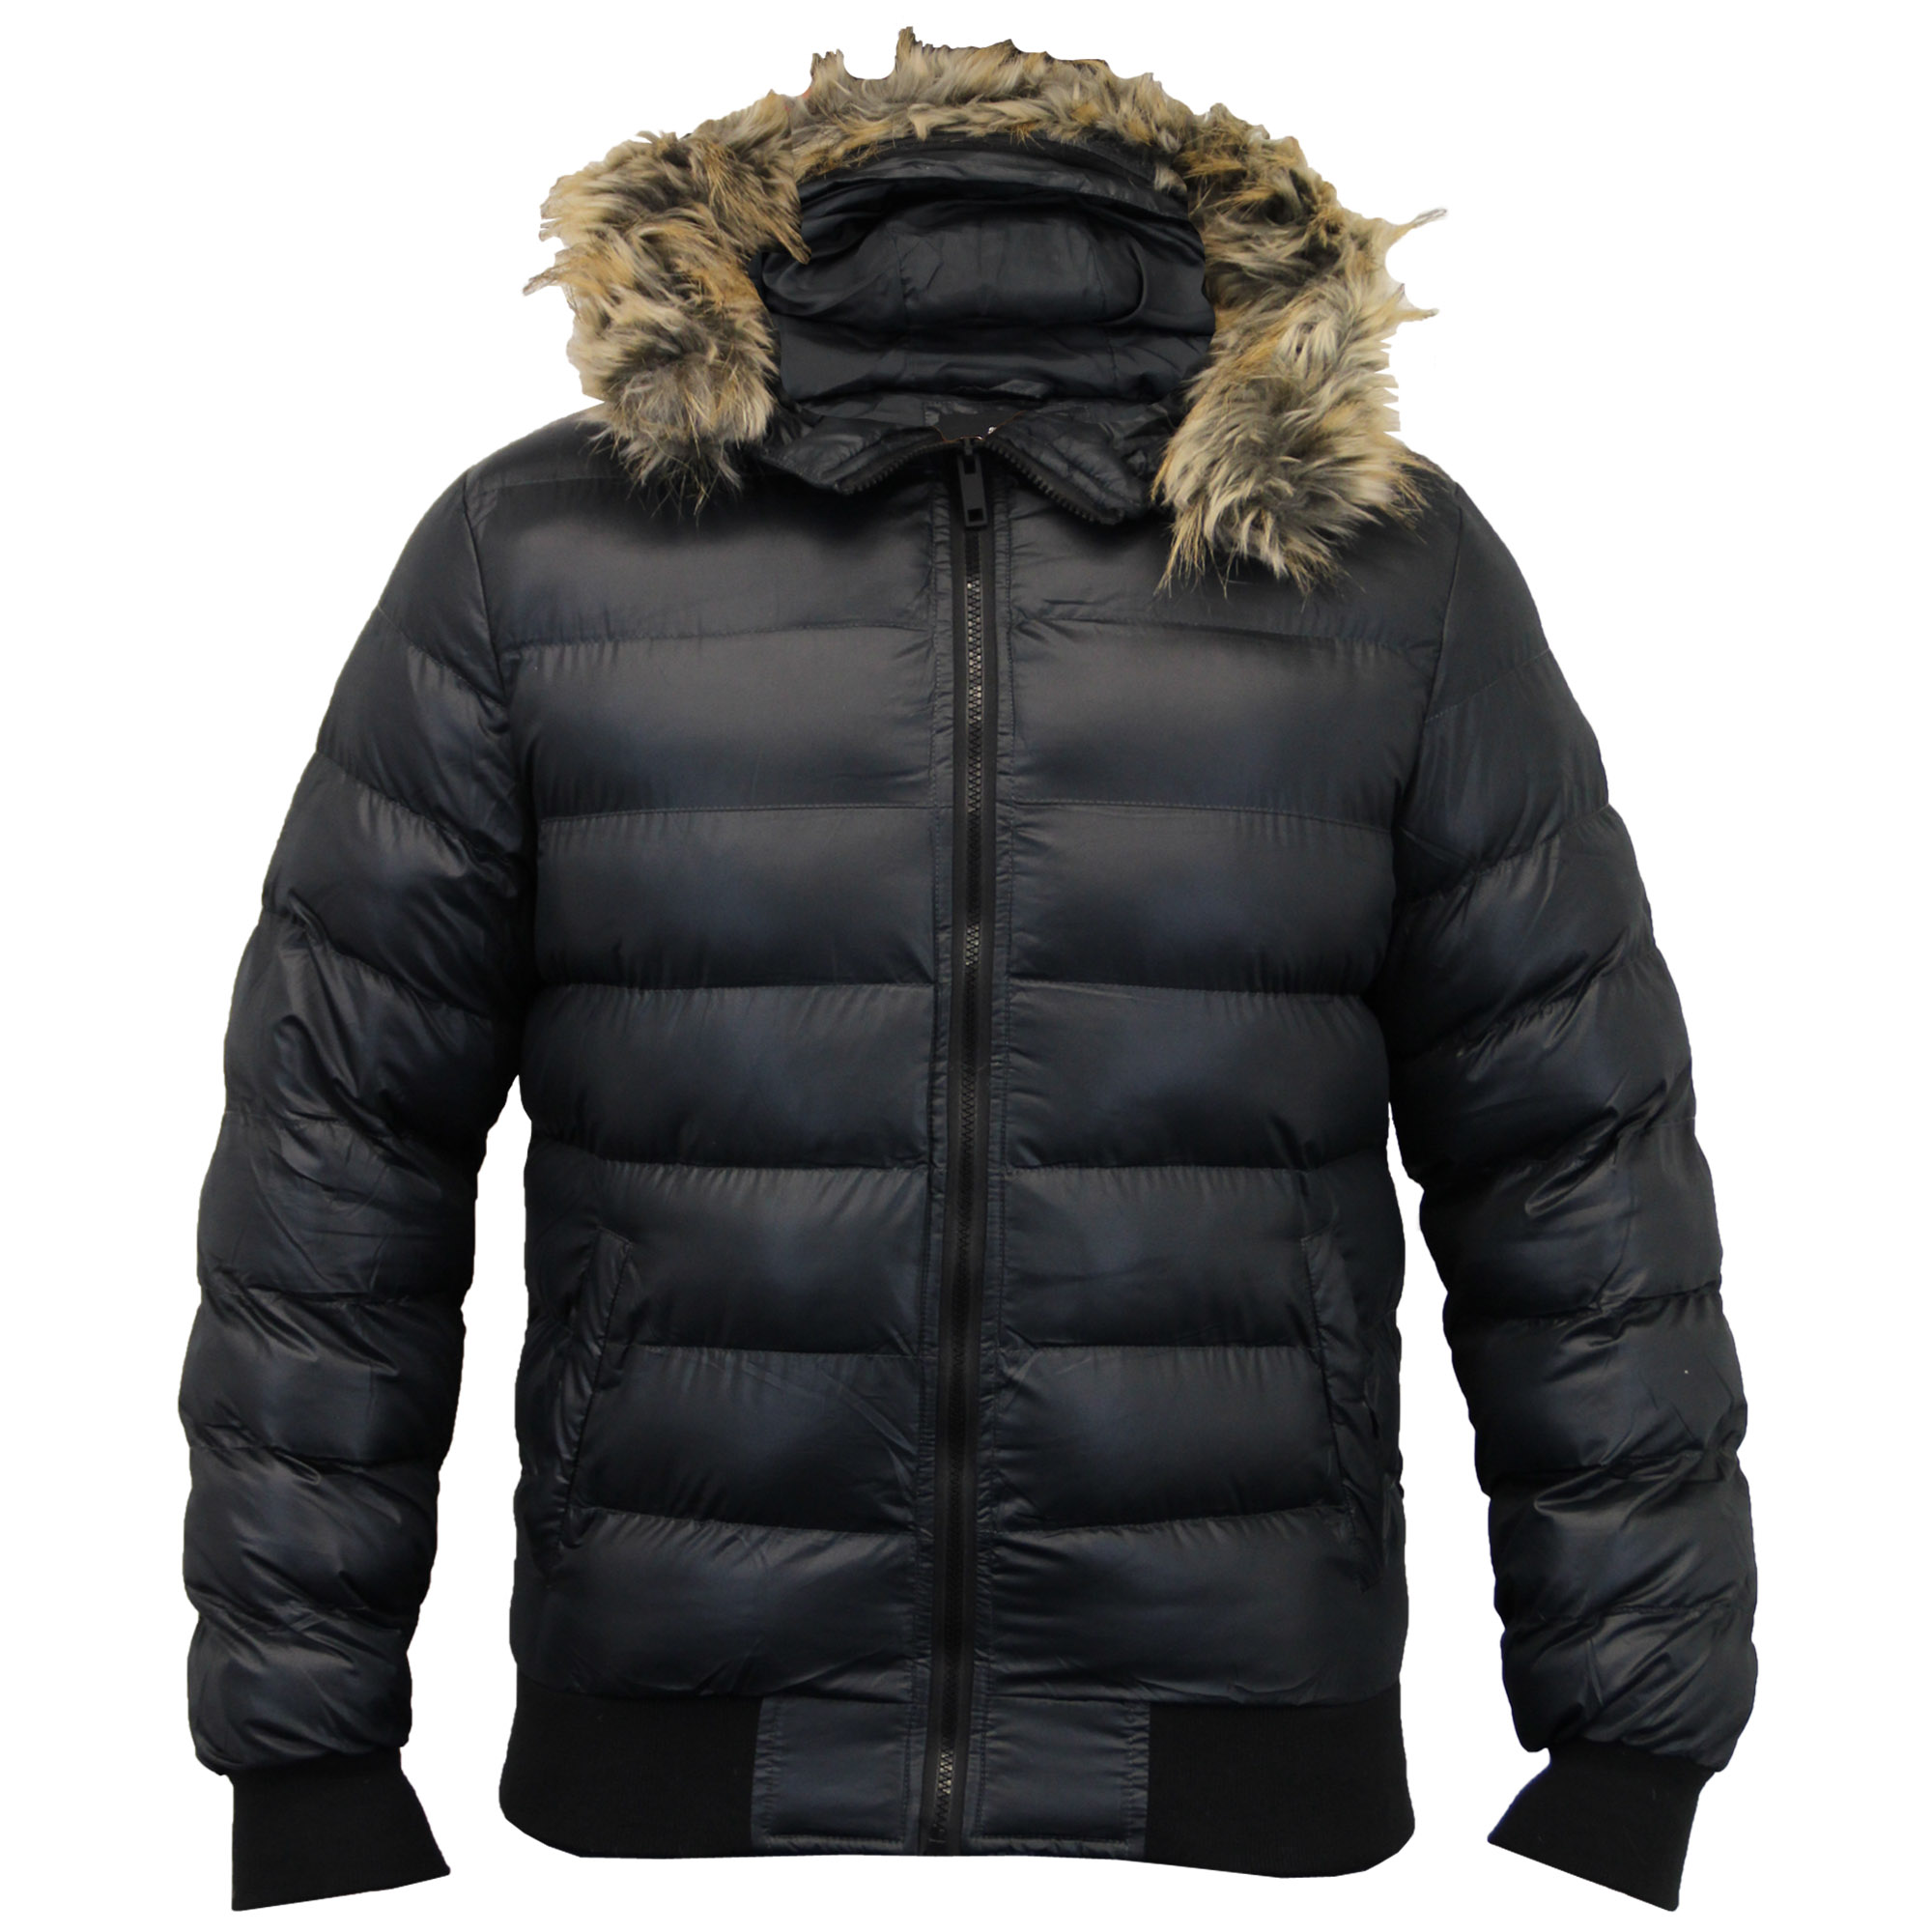 Henoo Men's Hooded Winter Jacket - Outdoor Thick Down Jacket with Removable Faux Fur Collar Hood, Black & White by Henoo $ - $ $ 14 99 - $ 36 99 Prime.